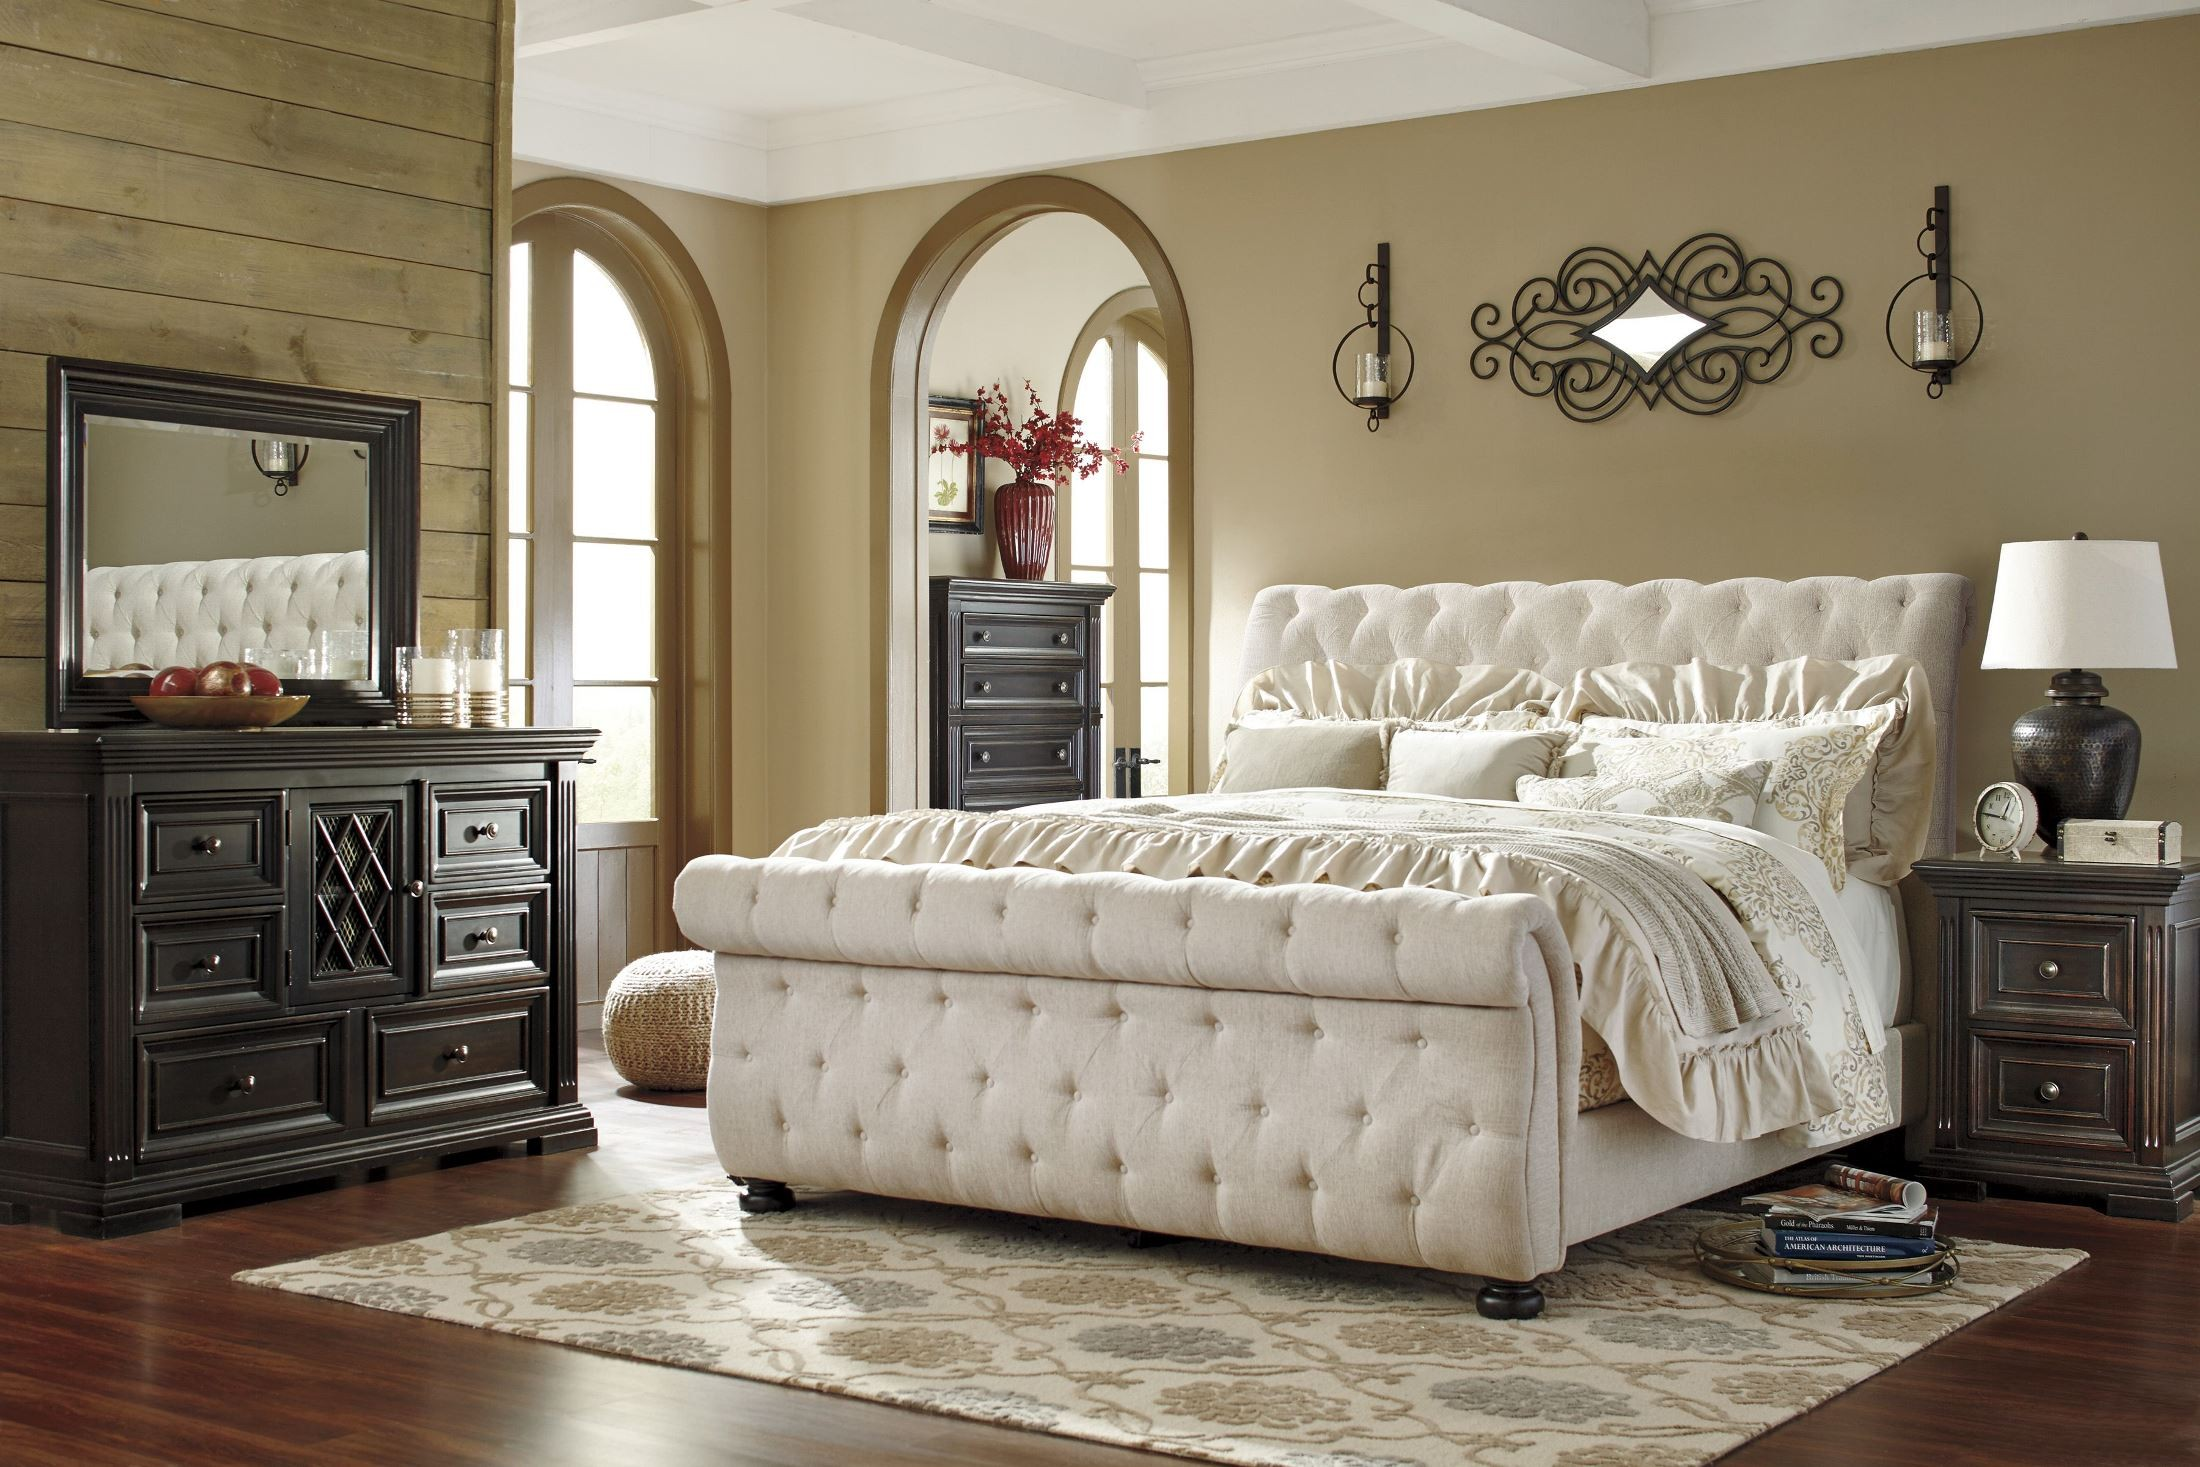 Willenburg Linen Queen Upholstered Sleigh Bed From Ashley